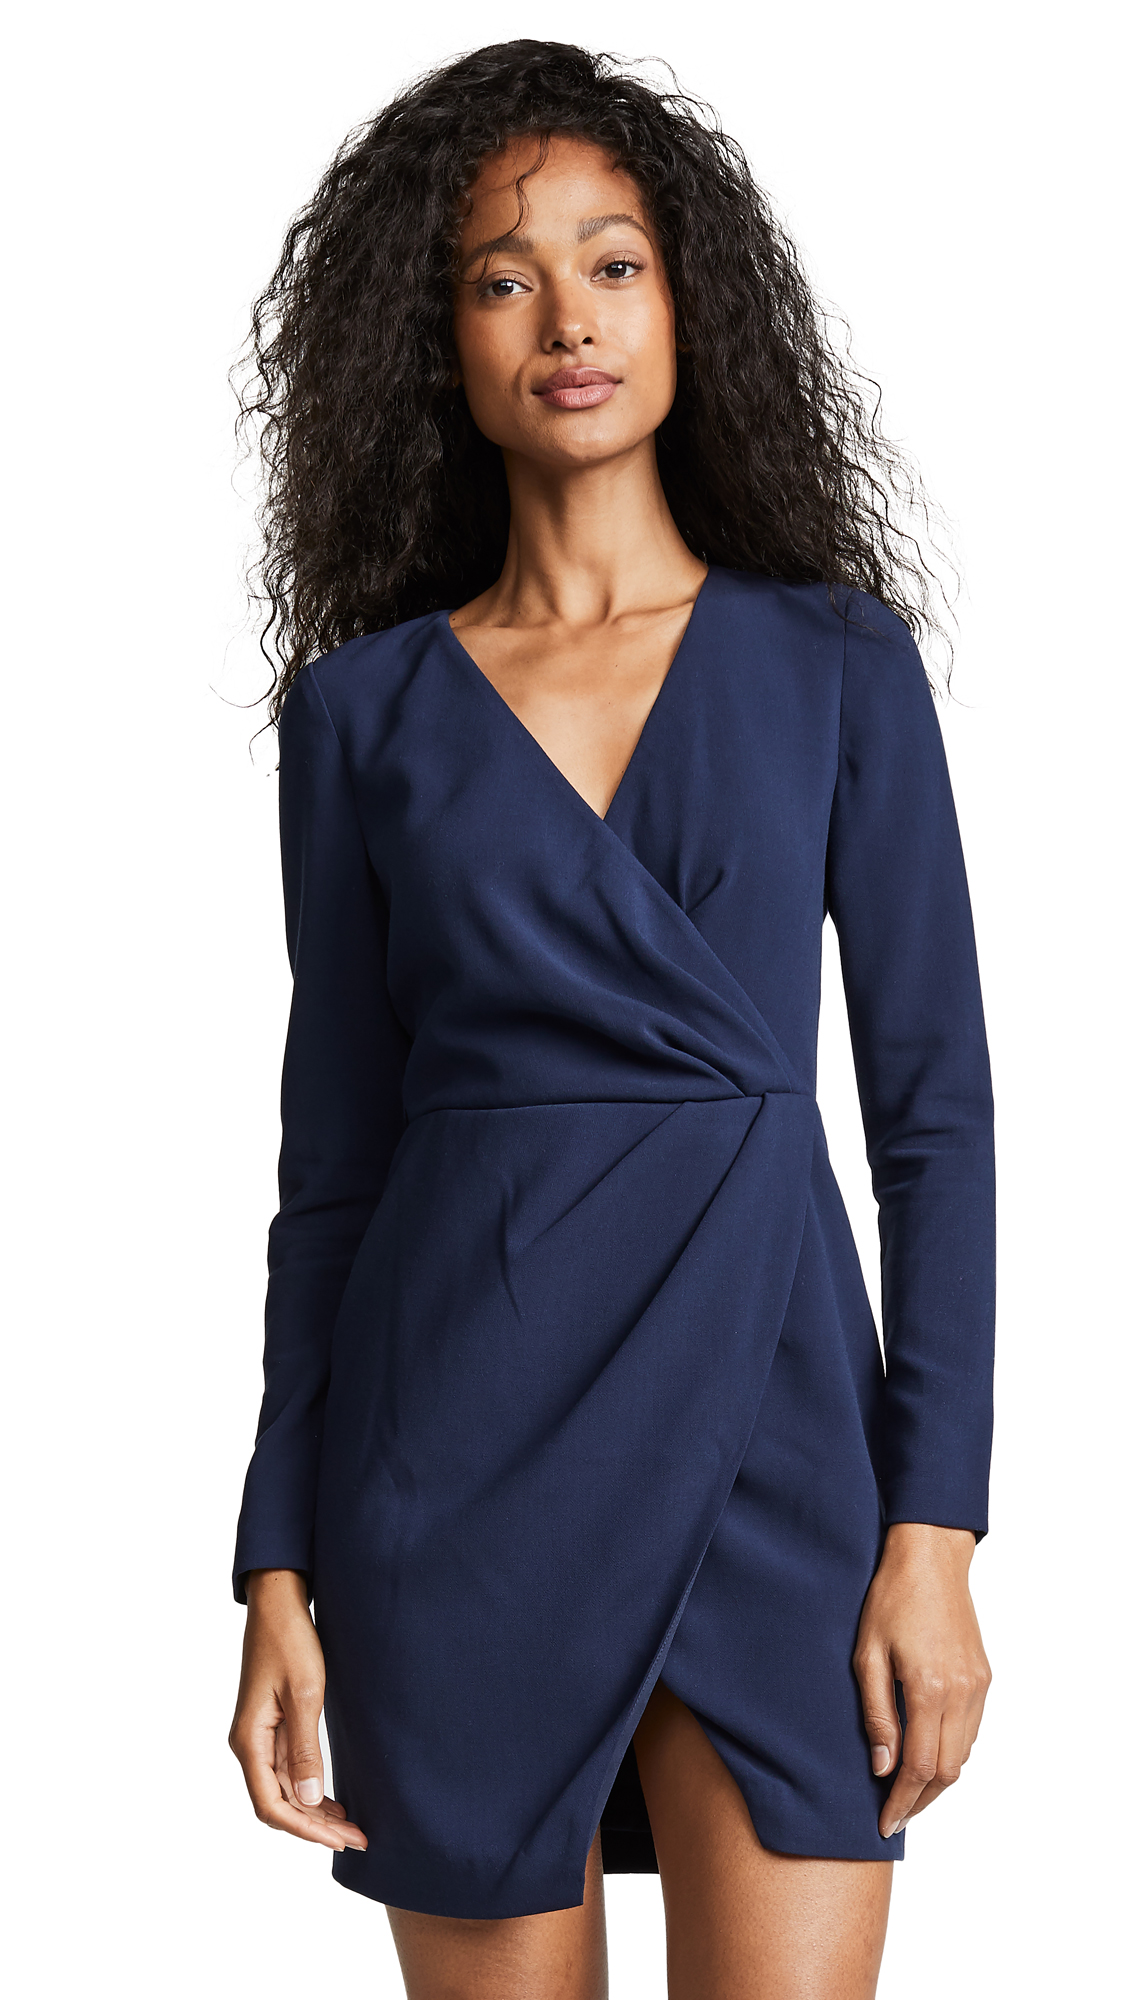 Black Halo Carie Mini Dress - Pacific Blue